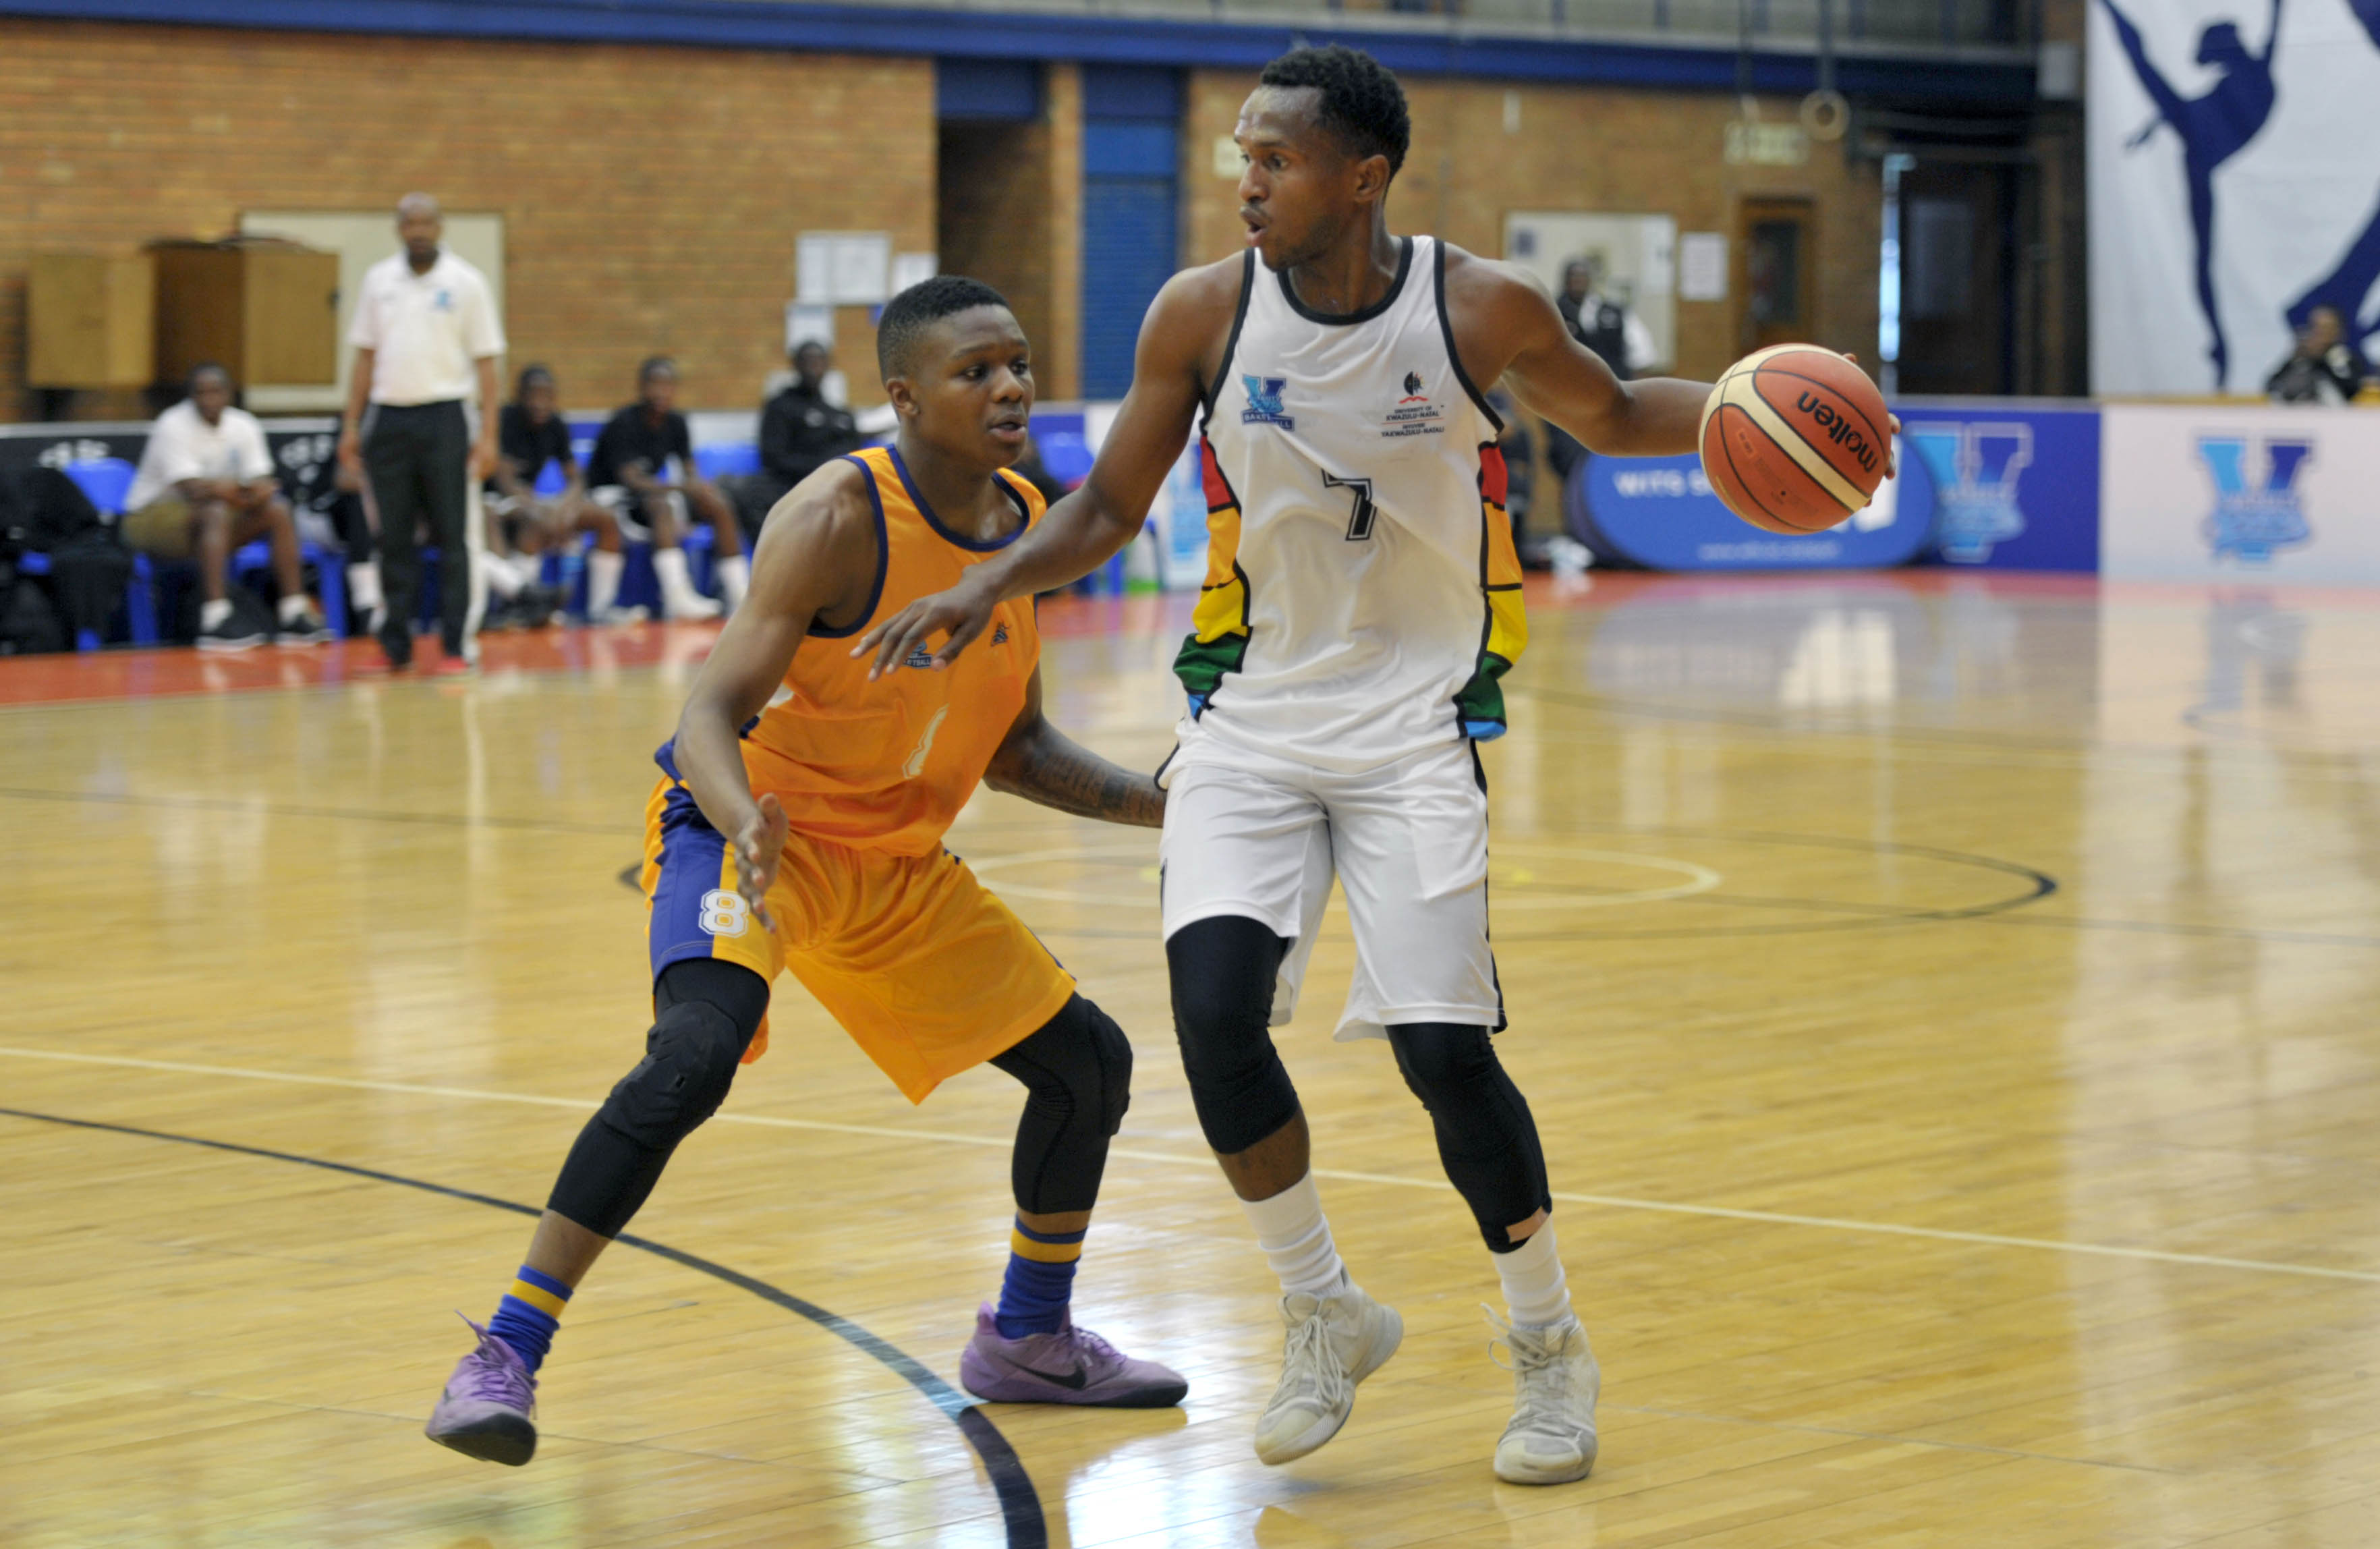 Habo Sithole (7) from University of KZN is defended by Briarley Klassen (7) from University of Witwatersrandduring the Varsity Sports Basketball match 07 between UKZN vs WITS on October 06, 2018 at Wits Multi-Purpose Hall in Johannesburg, South Africa. #Varsitybasketball (Photo by Craig Nieuwenhuizen/SASPA)